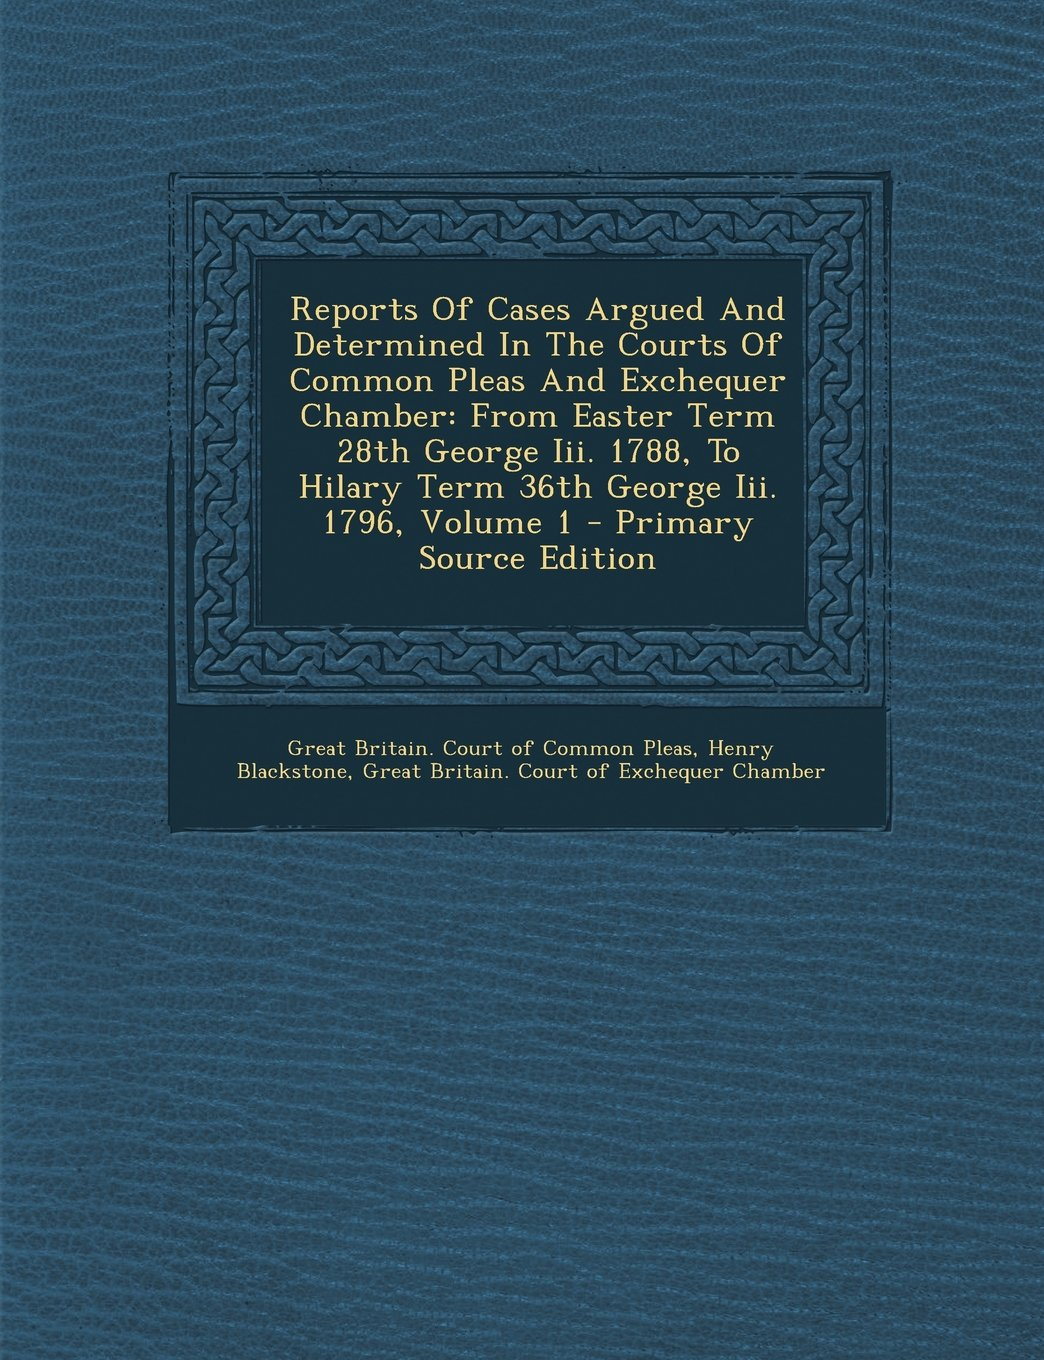 Read Online Reports Of Cases Argued And Determined In The Courts Of Common Pleas And Exchequer Chamber: From Easter Term 28th George Iii. 1788, To Hilary Term 36th George Iii. 1796, Volume 1 pdf epub